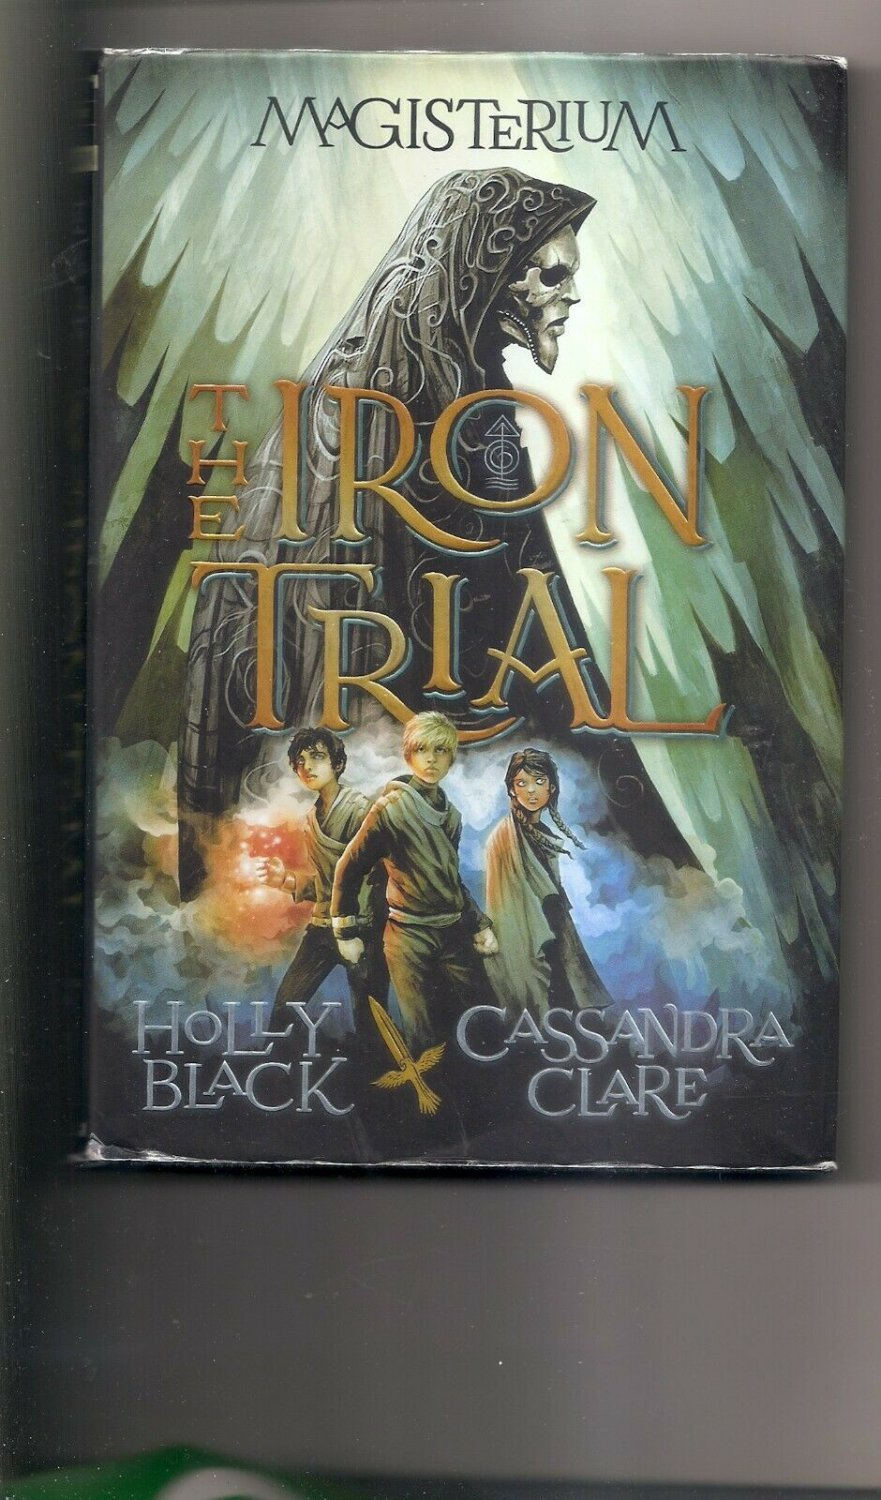 The Iron Trial by Cassandra Clare and Holly Black - Magisterium series NEW